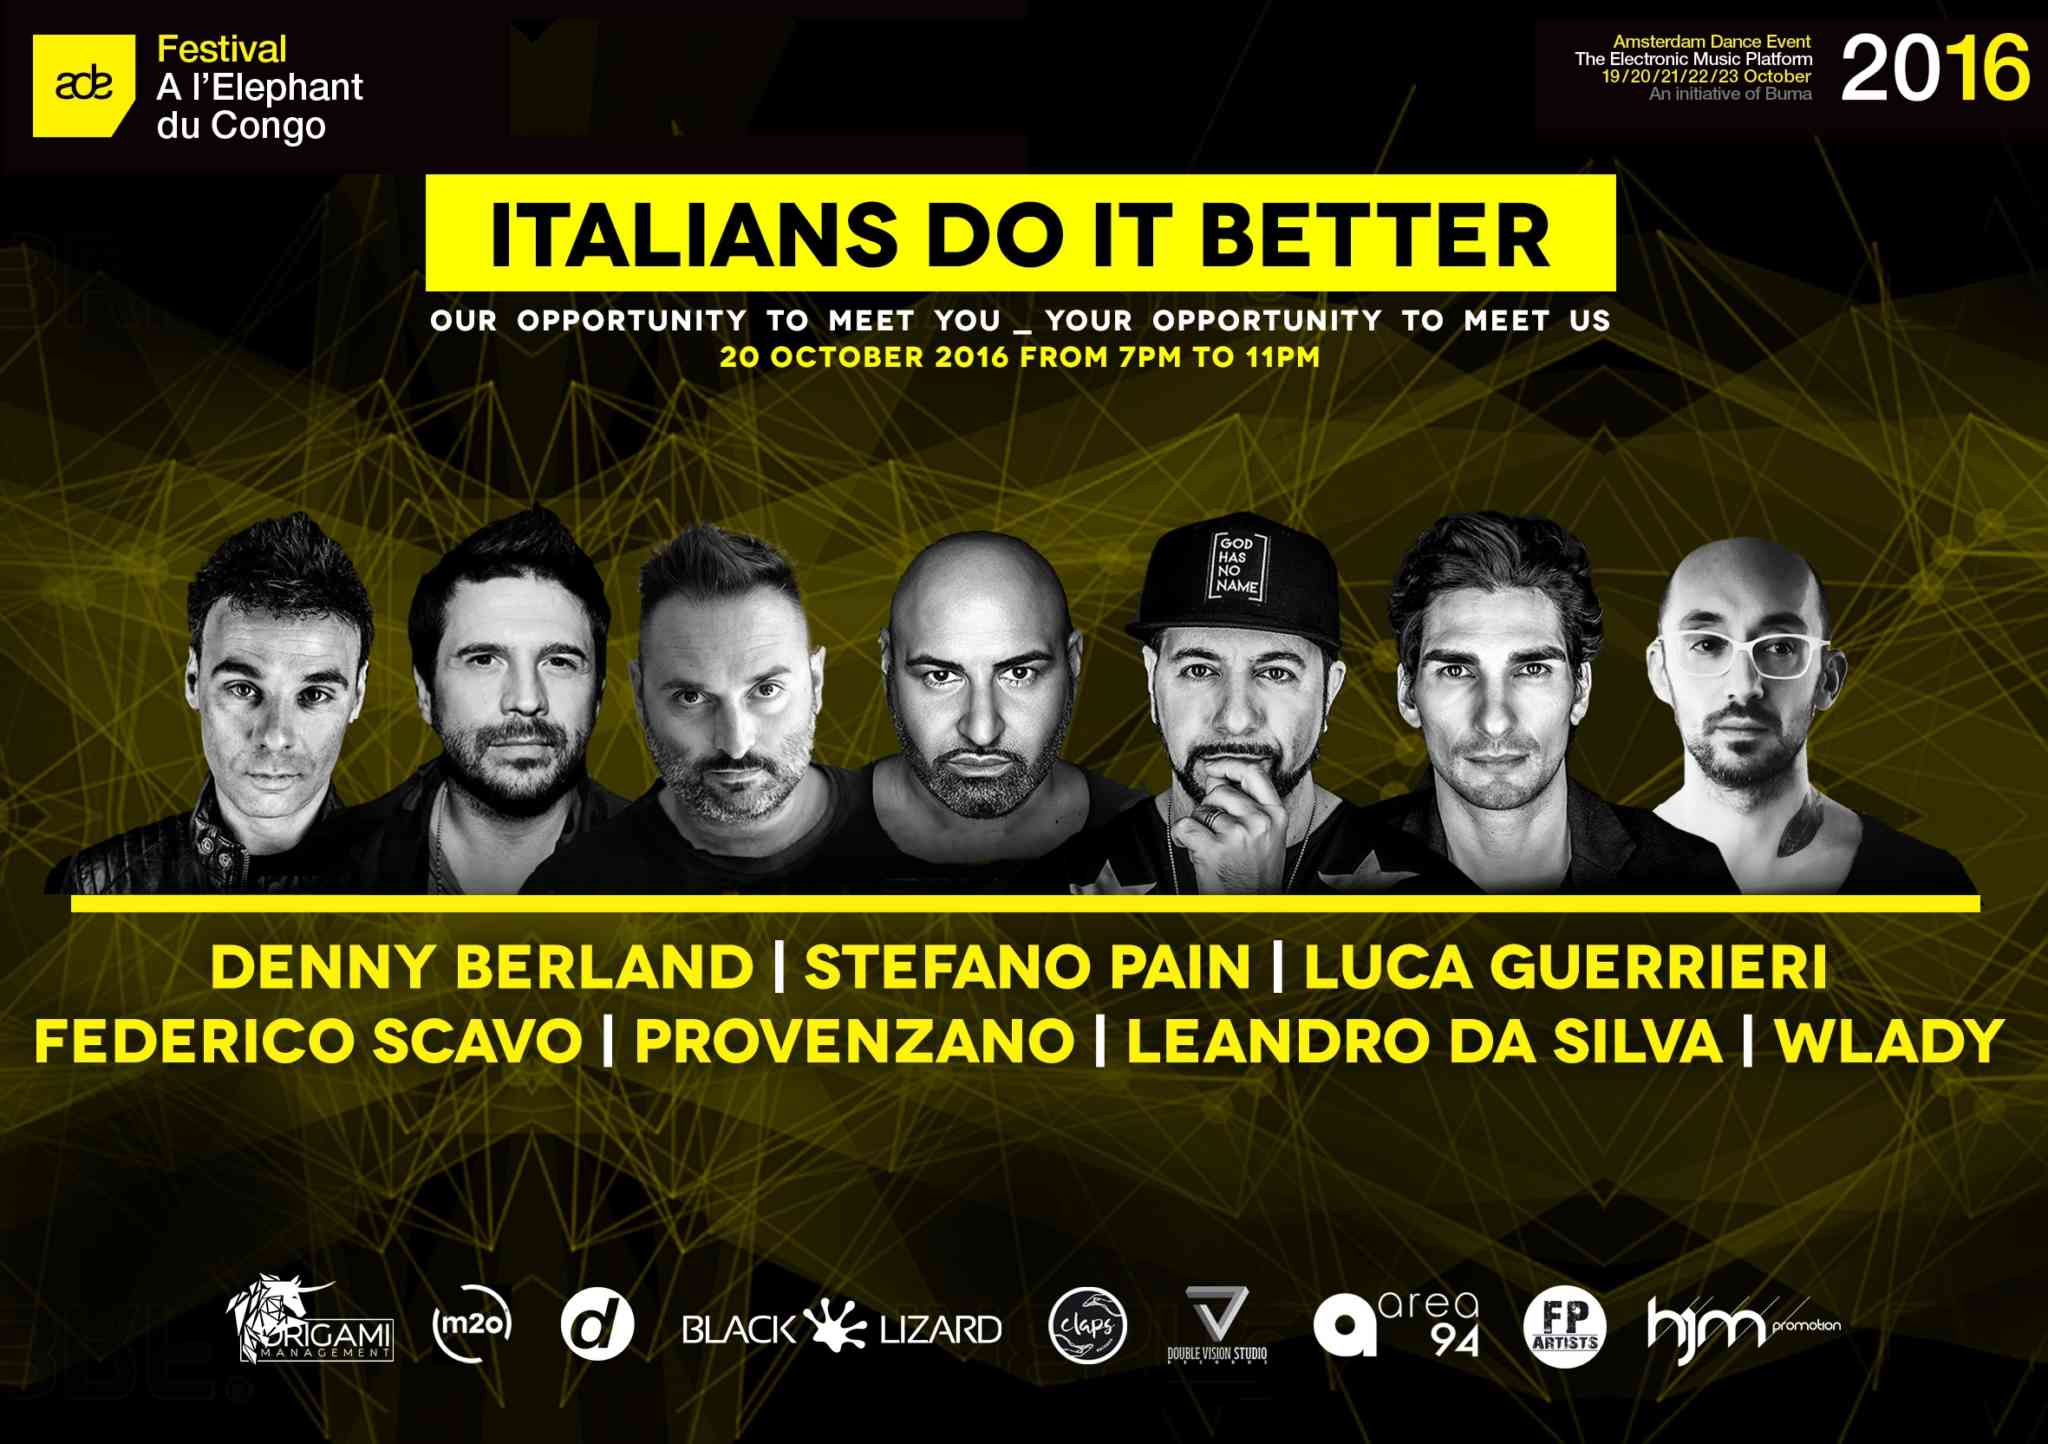 Musica elettronica, ad Amsterdam con Italians do it better